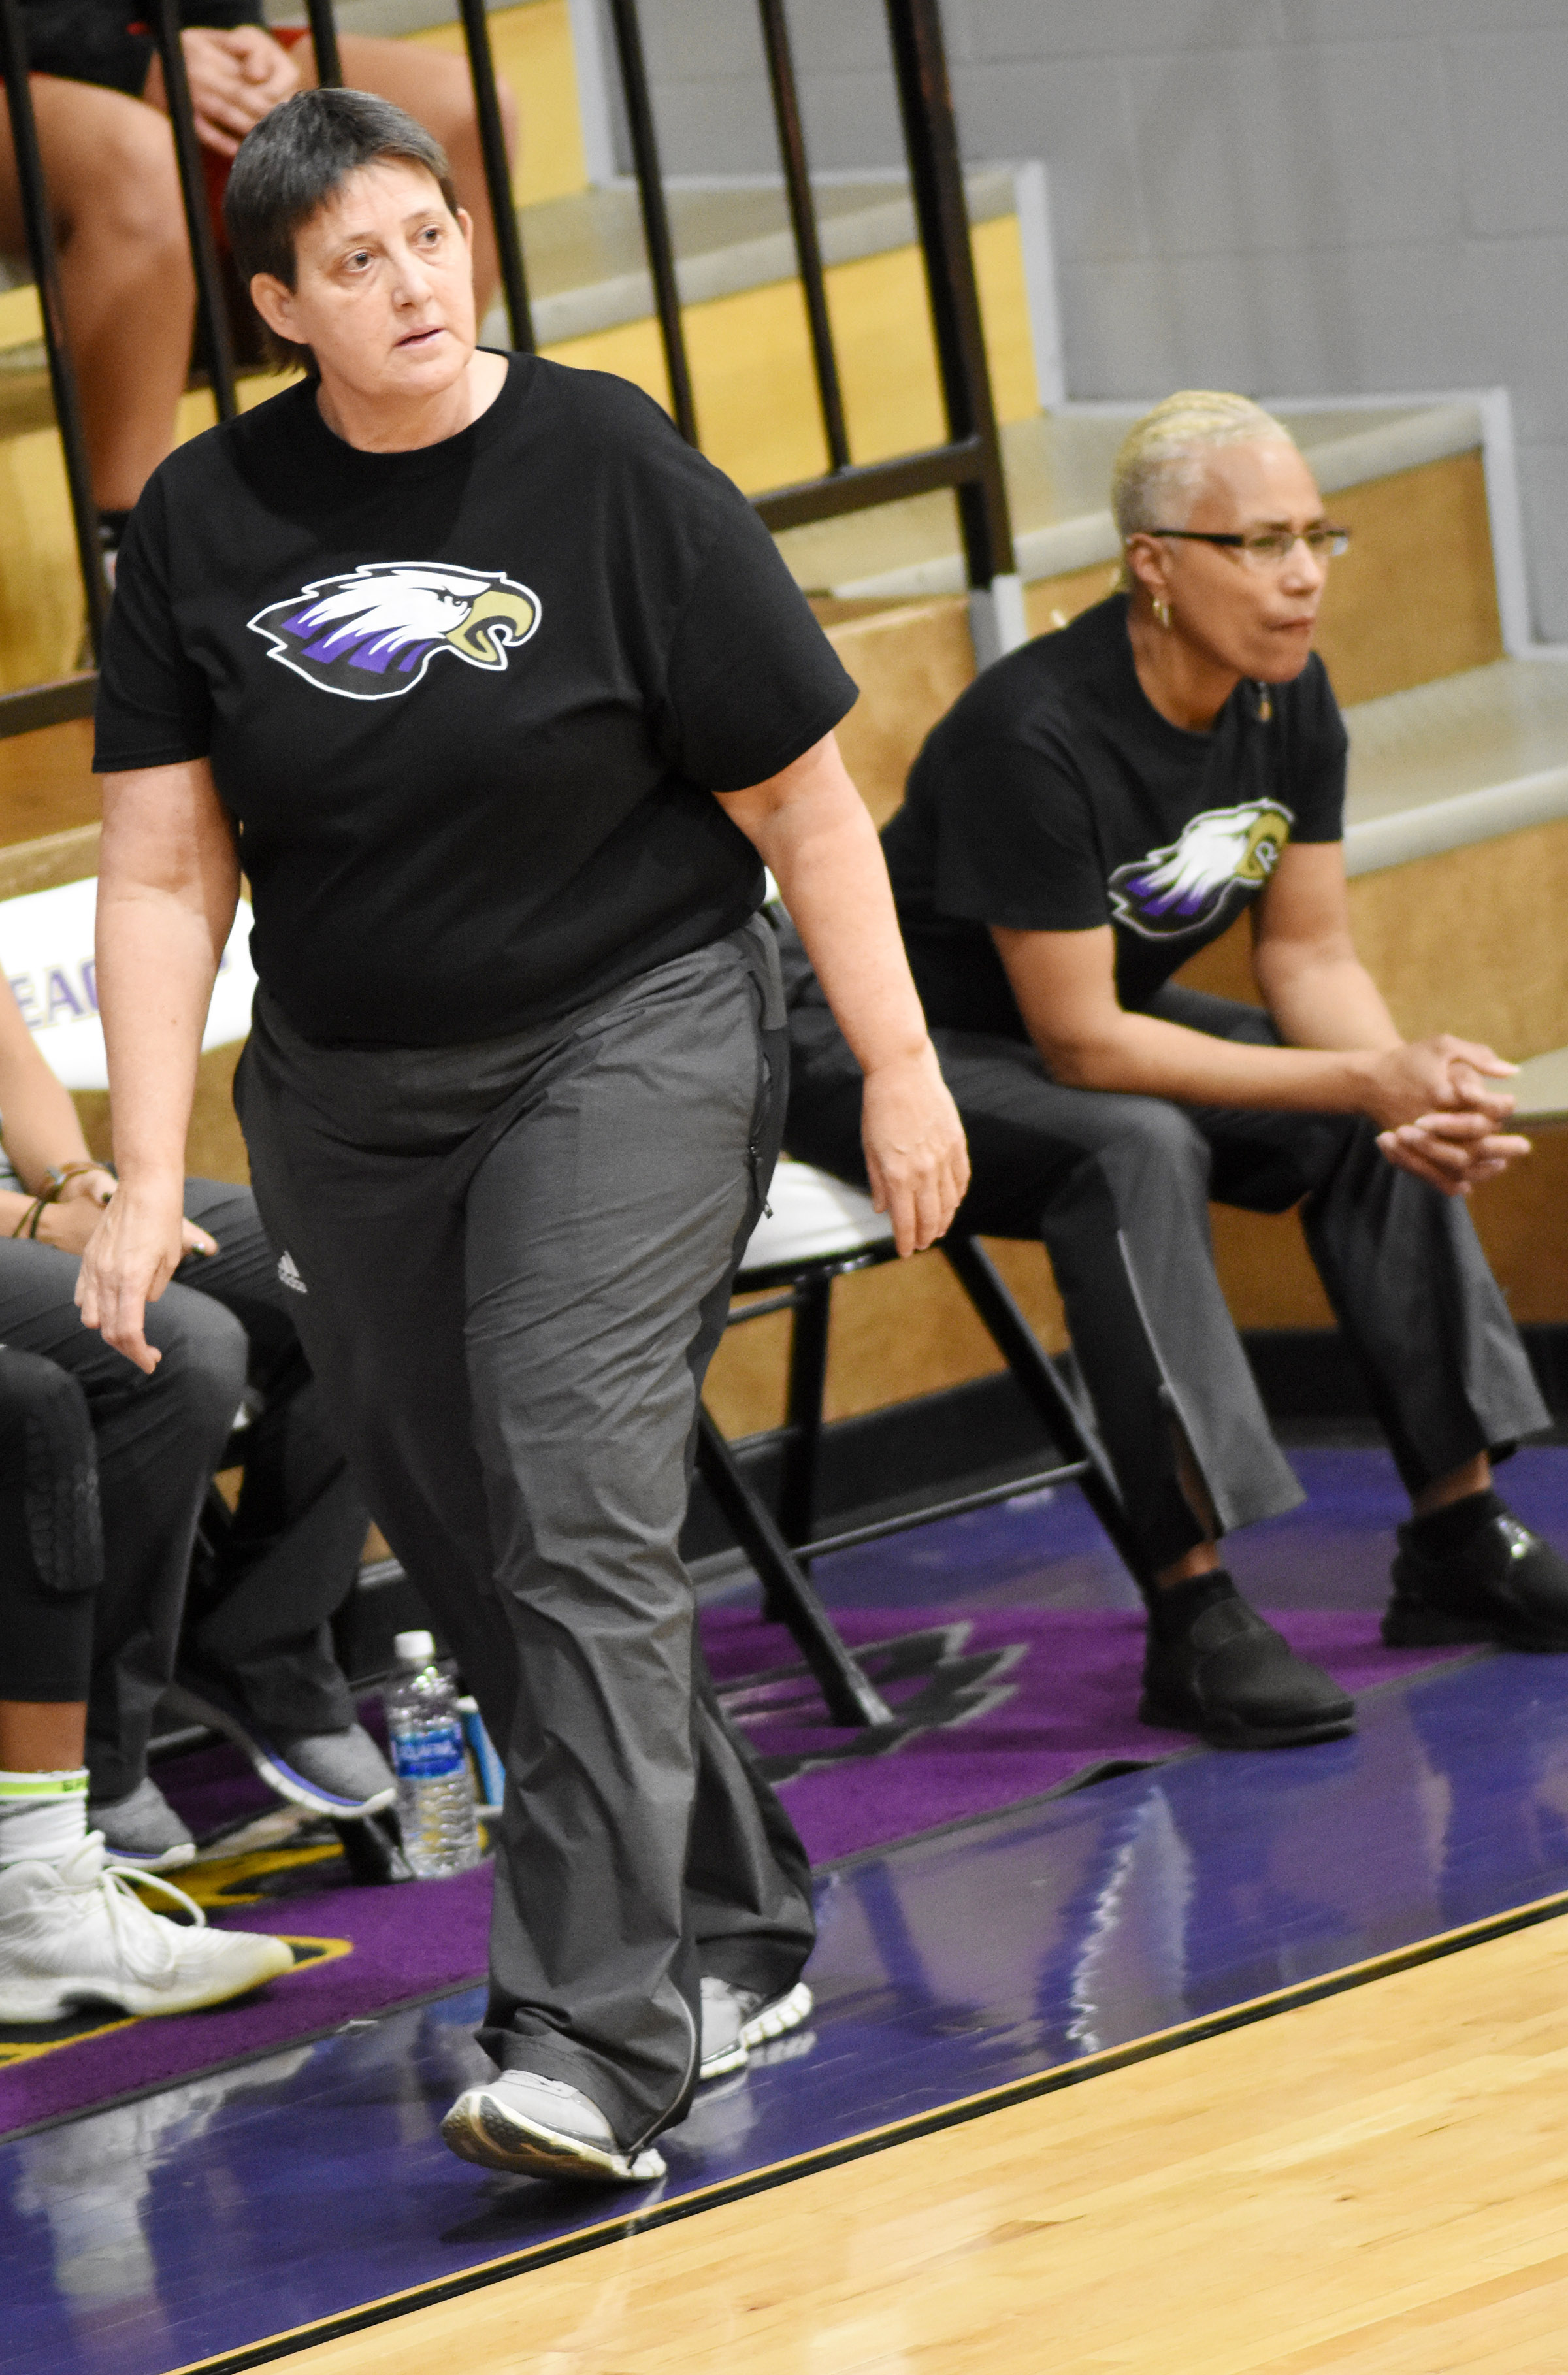 CHS girls' basketball assistant coach Katie Wilkerson watches her players.